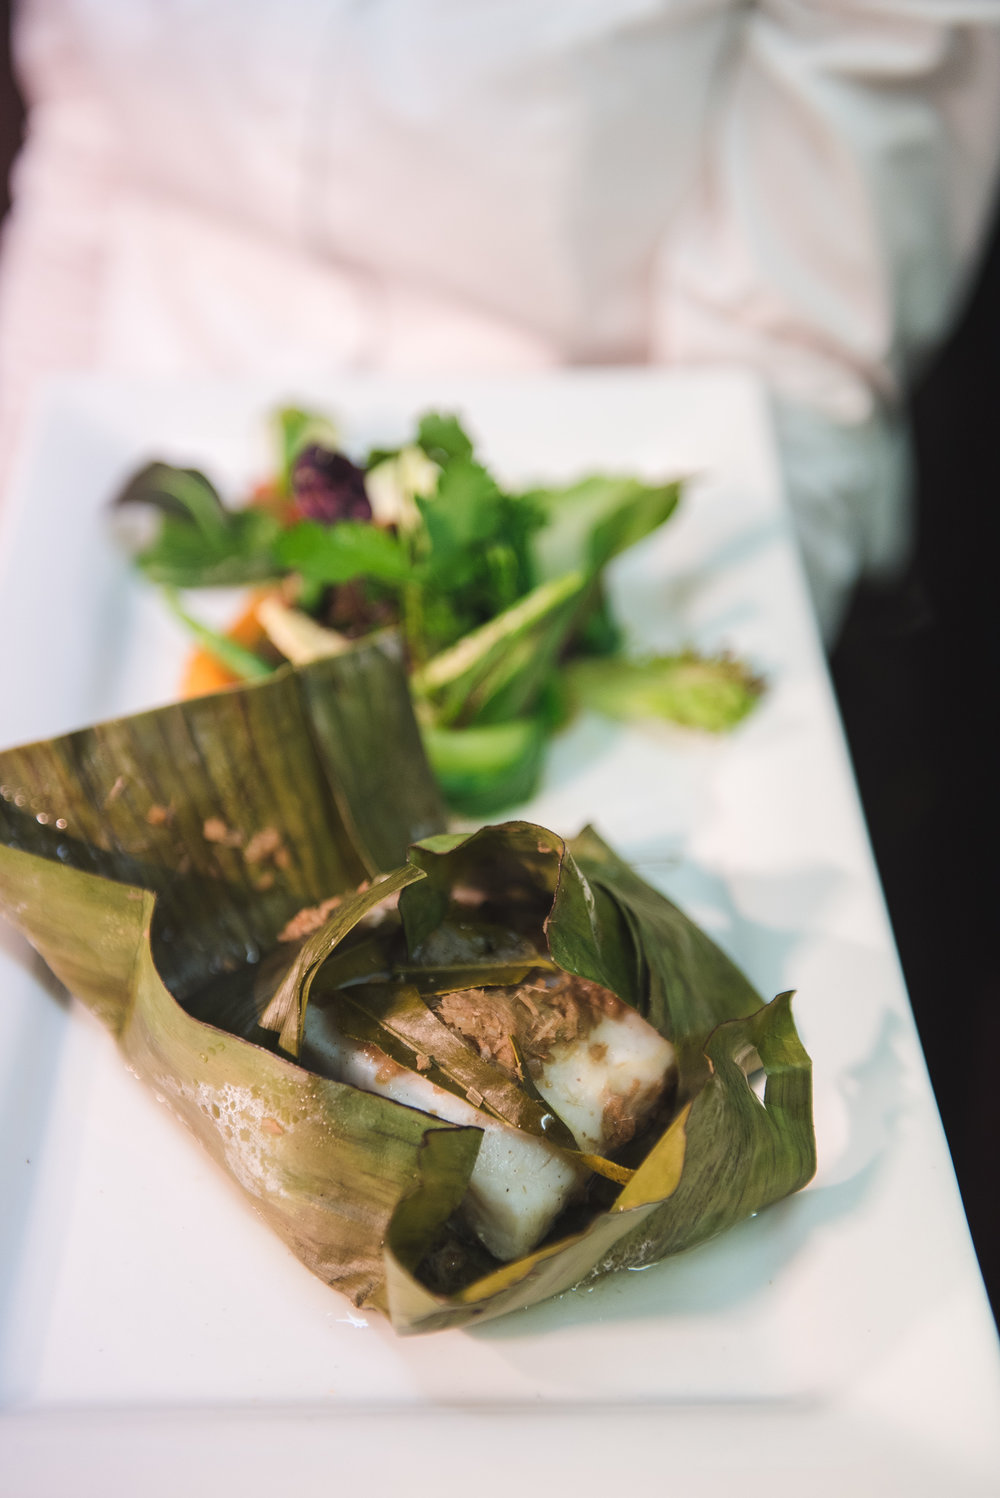 My grandmother used to cooked an aromatic steamed barramundi in banana leave for me when i was a little one.